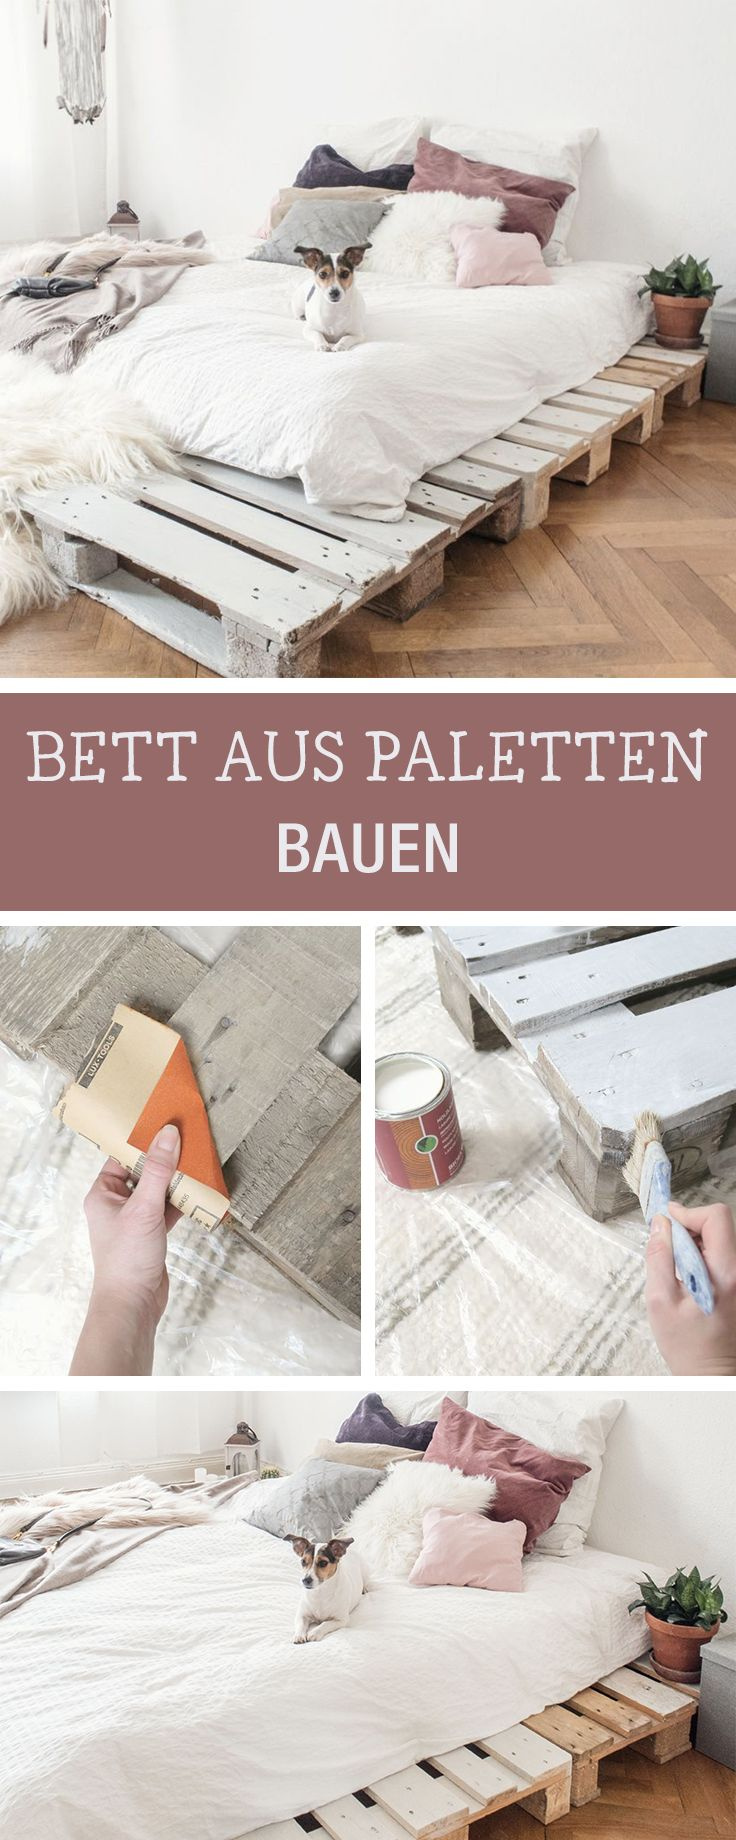 die 25 besten ideen zu palettenbett auf pinterest palettenbetten palettenplattform bett und. Black Bedroom Furniture Sets. Home Design Ideas